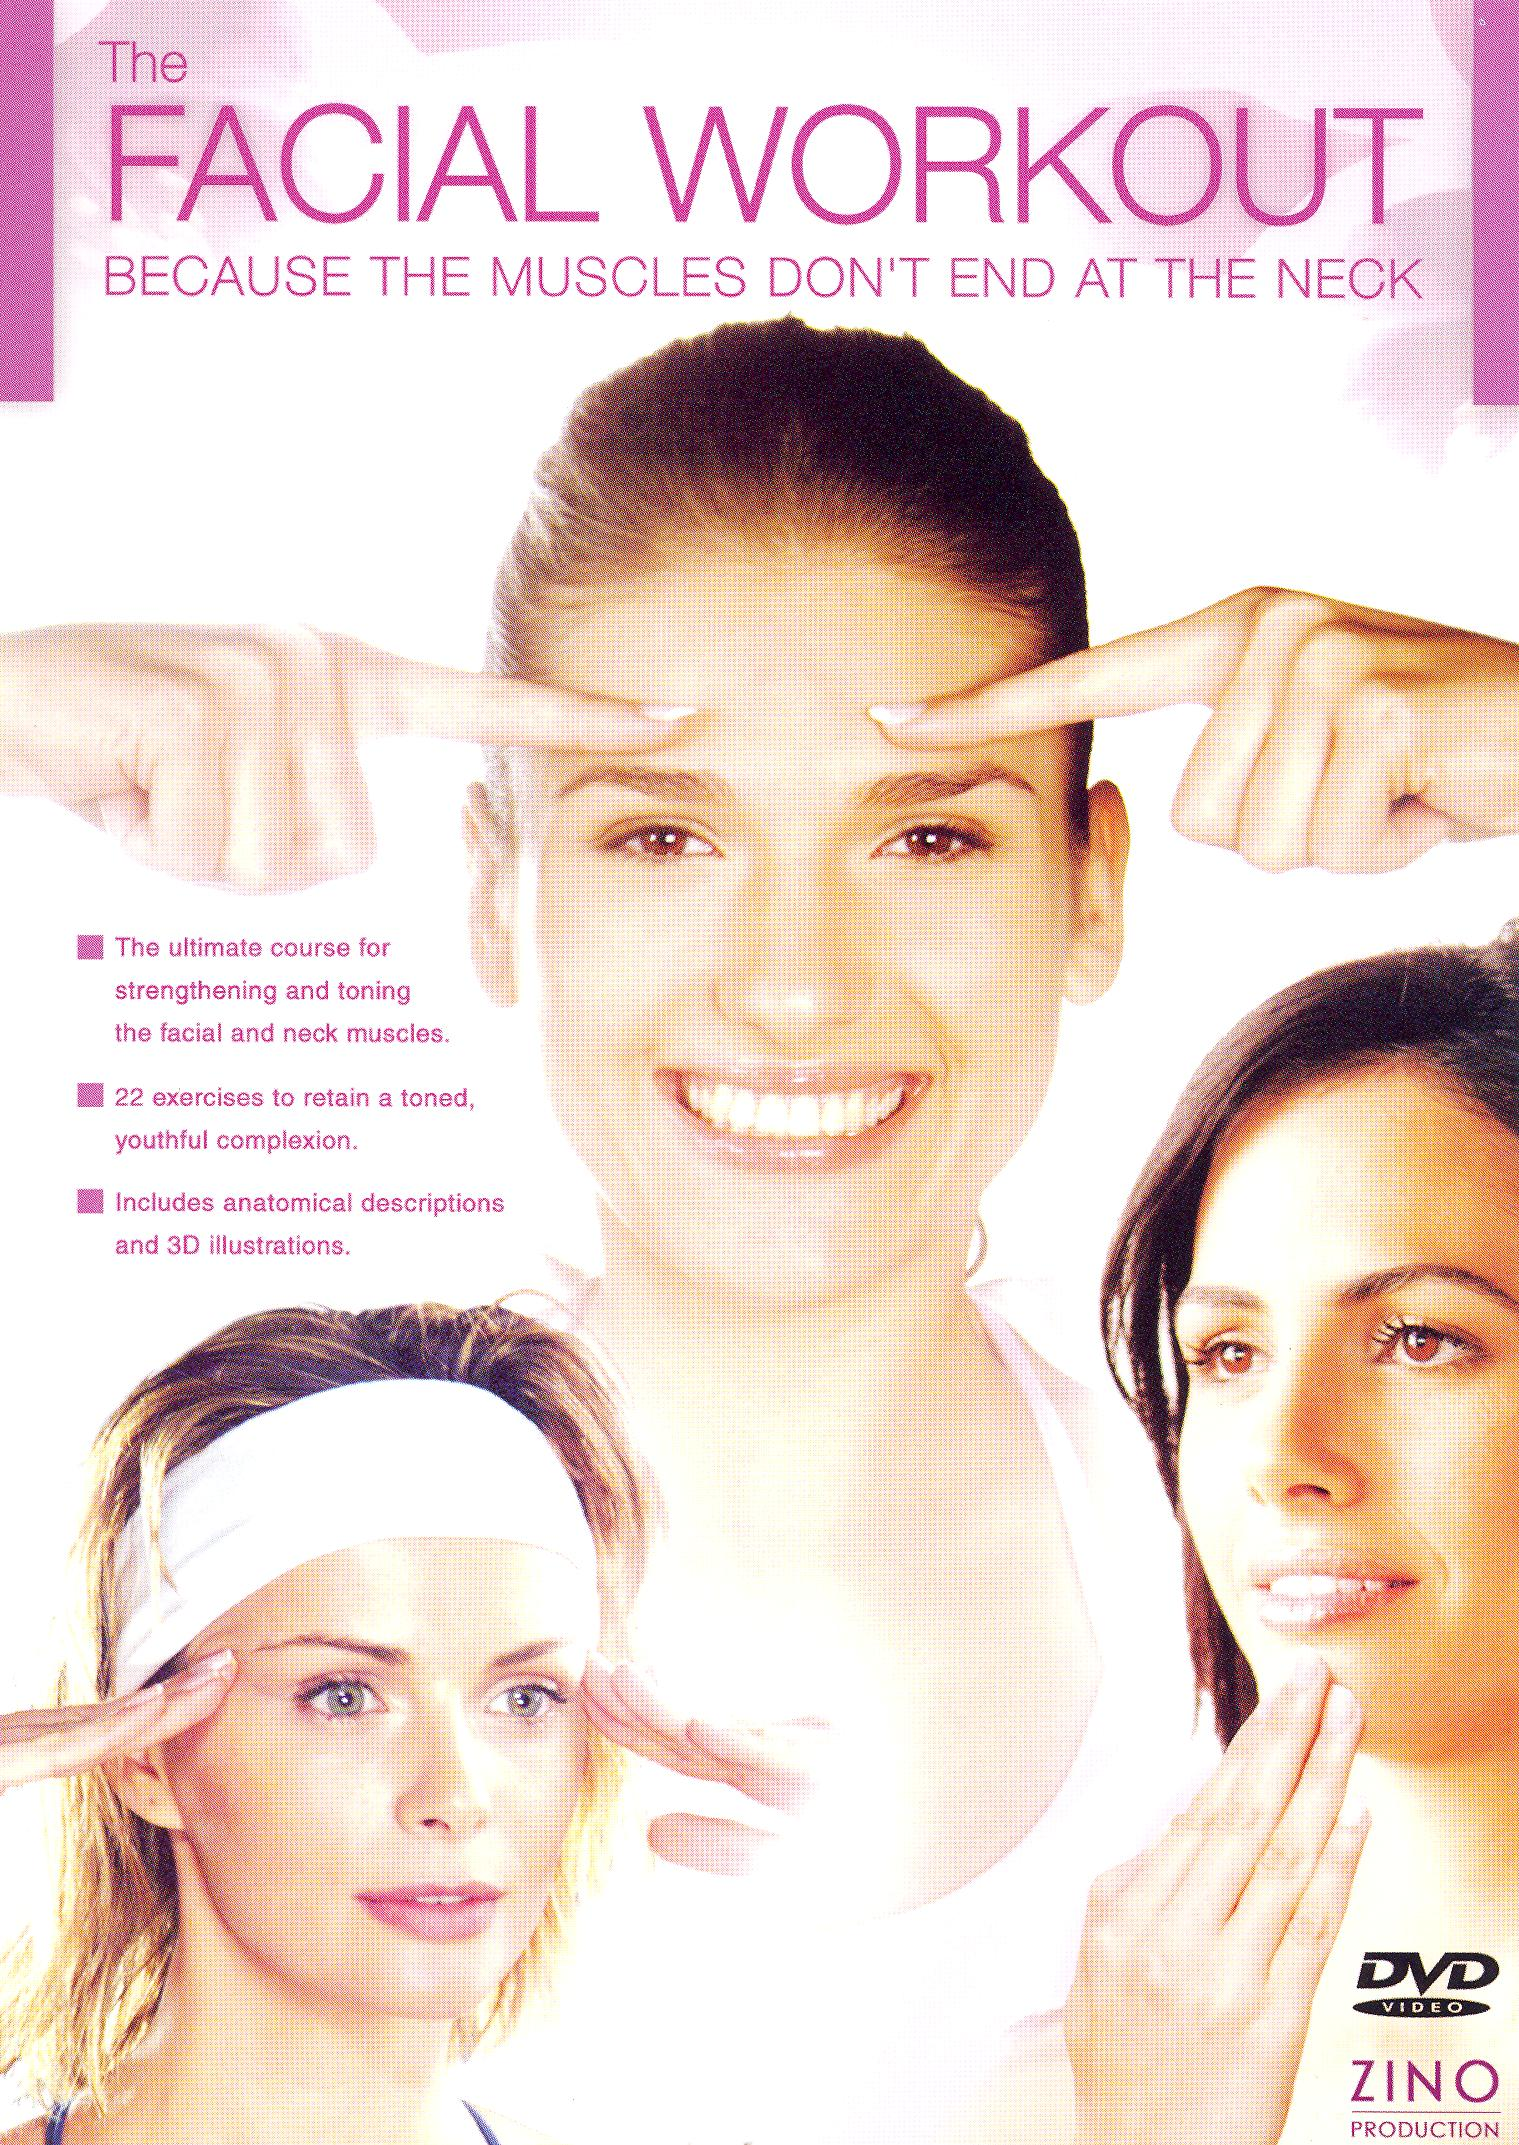 Tal Reinhart: Facial Workout - Because the Muscles Don't End at the Neck